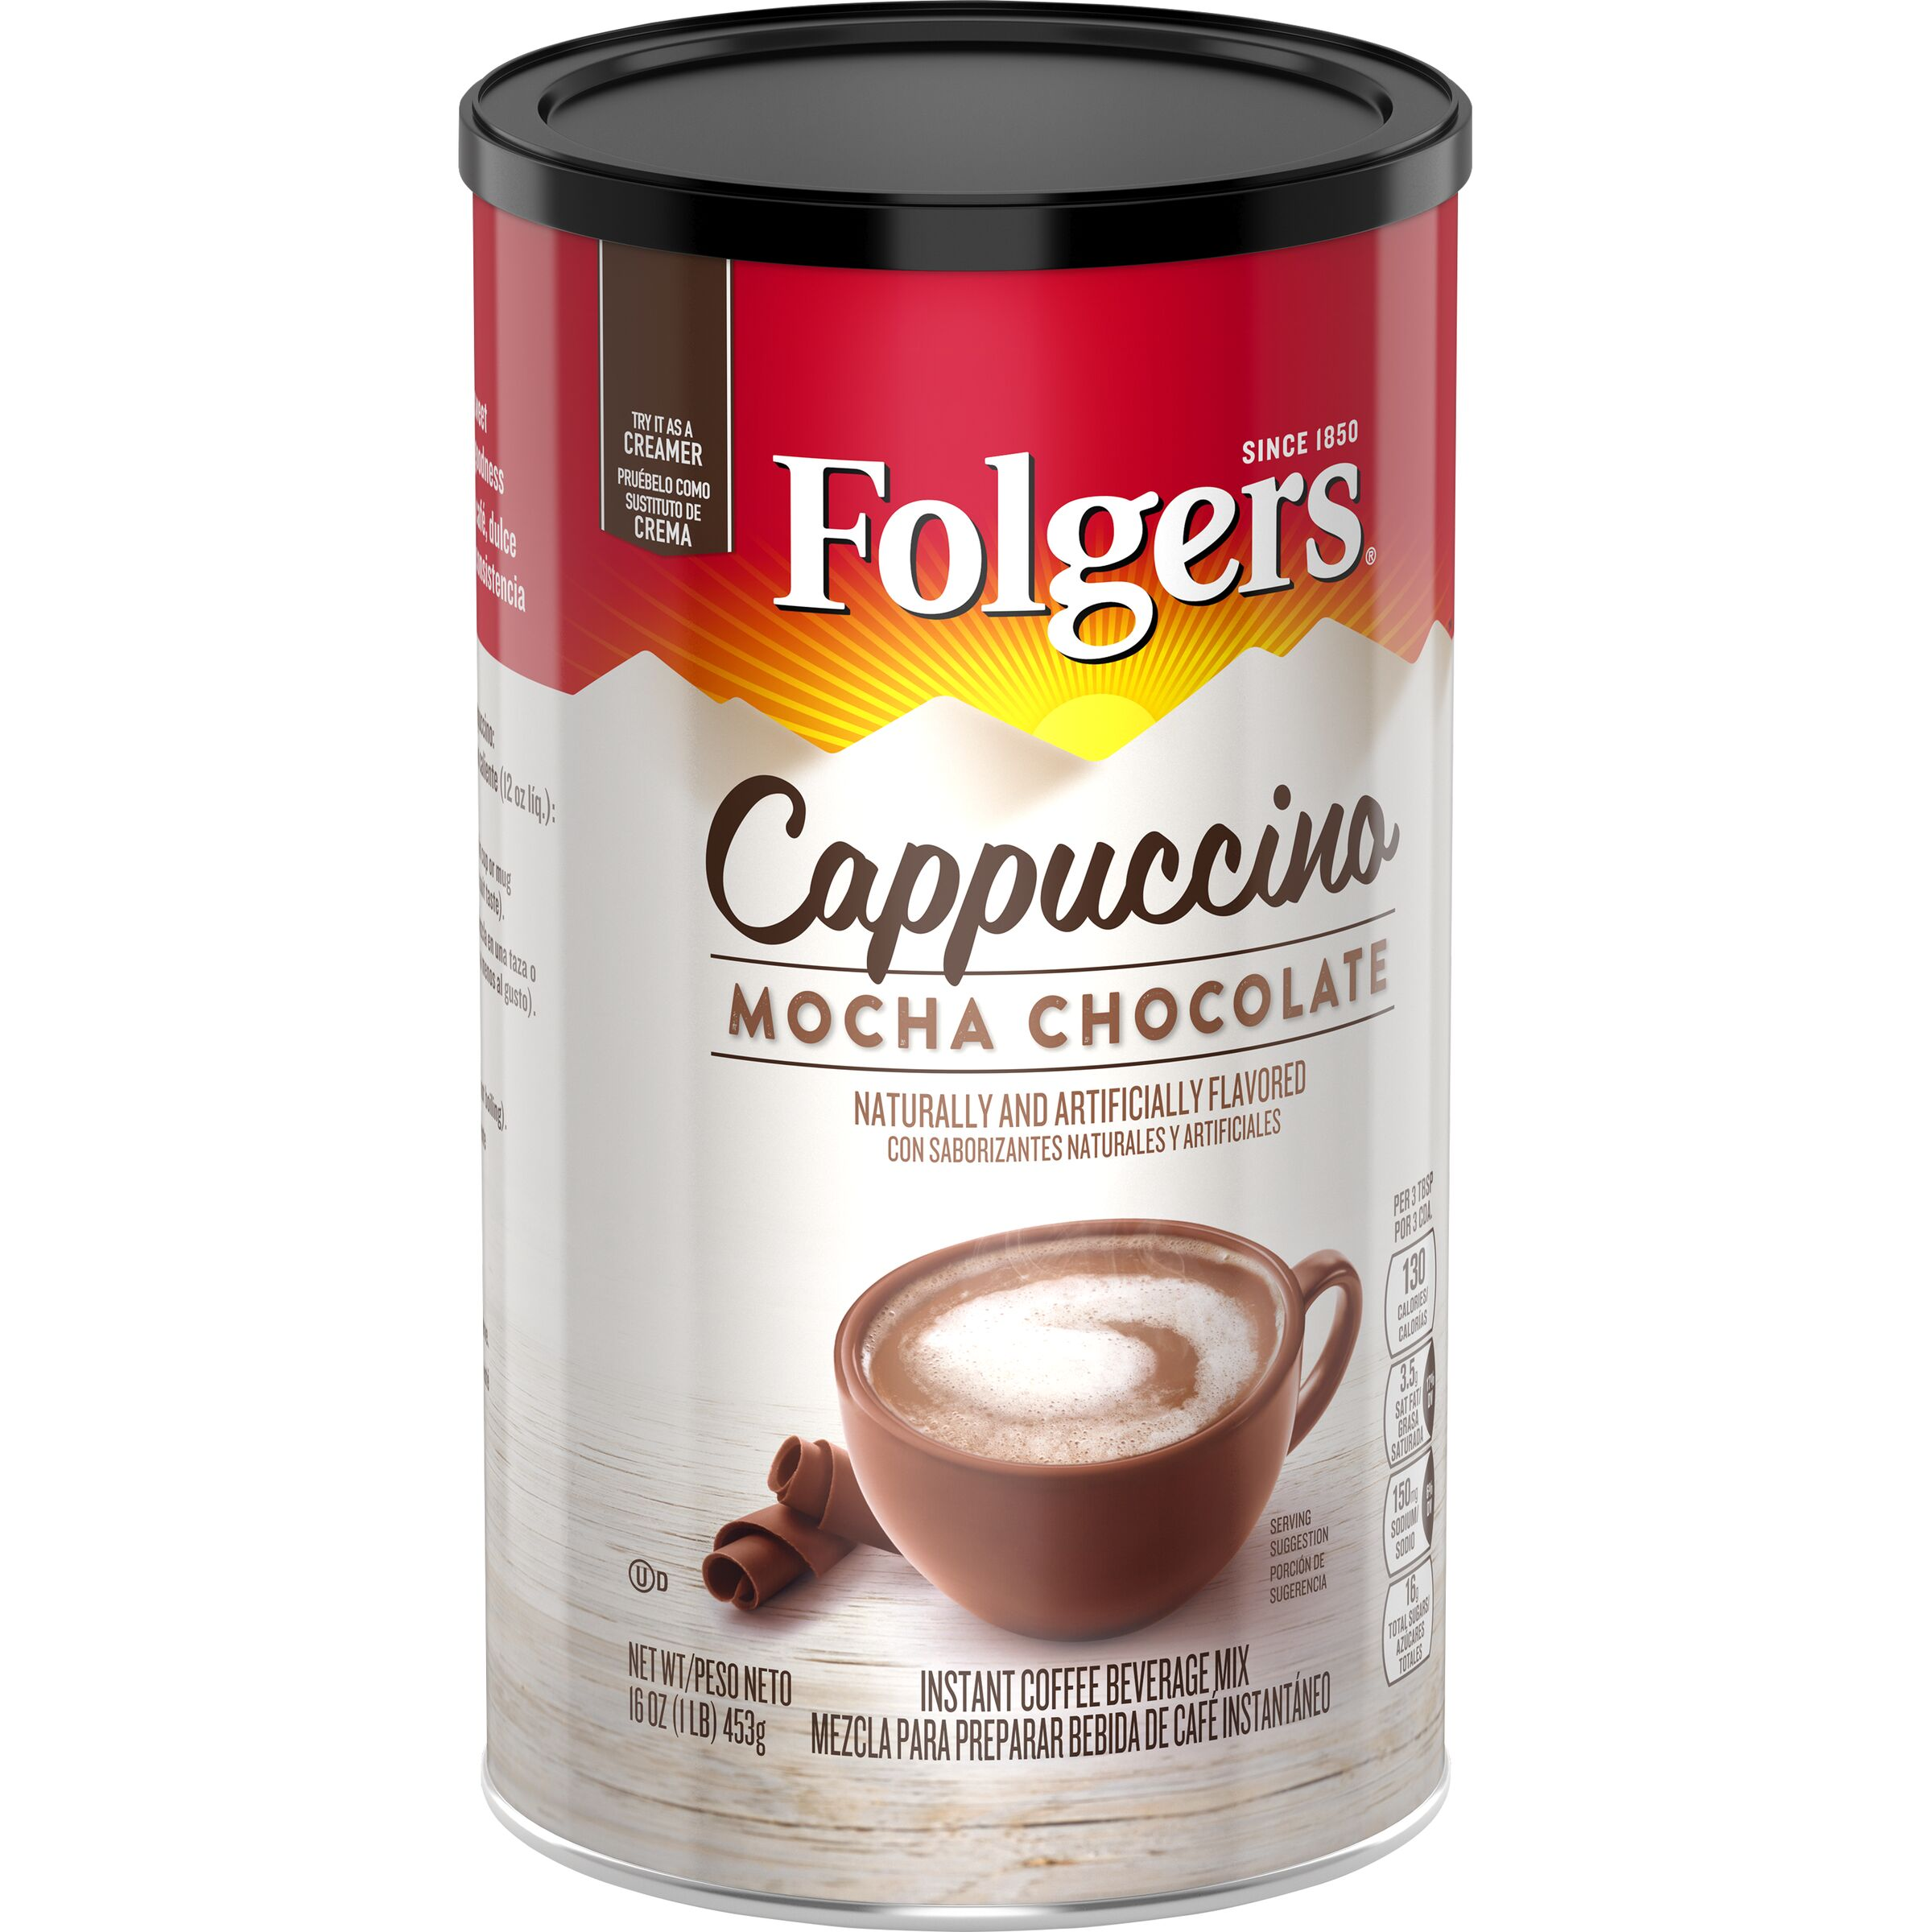 Folgers Cappuccinos Mocha Chocolate Flavored Cappuccino Mix